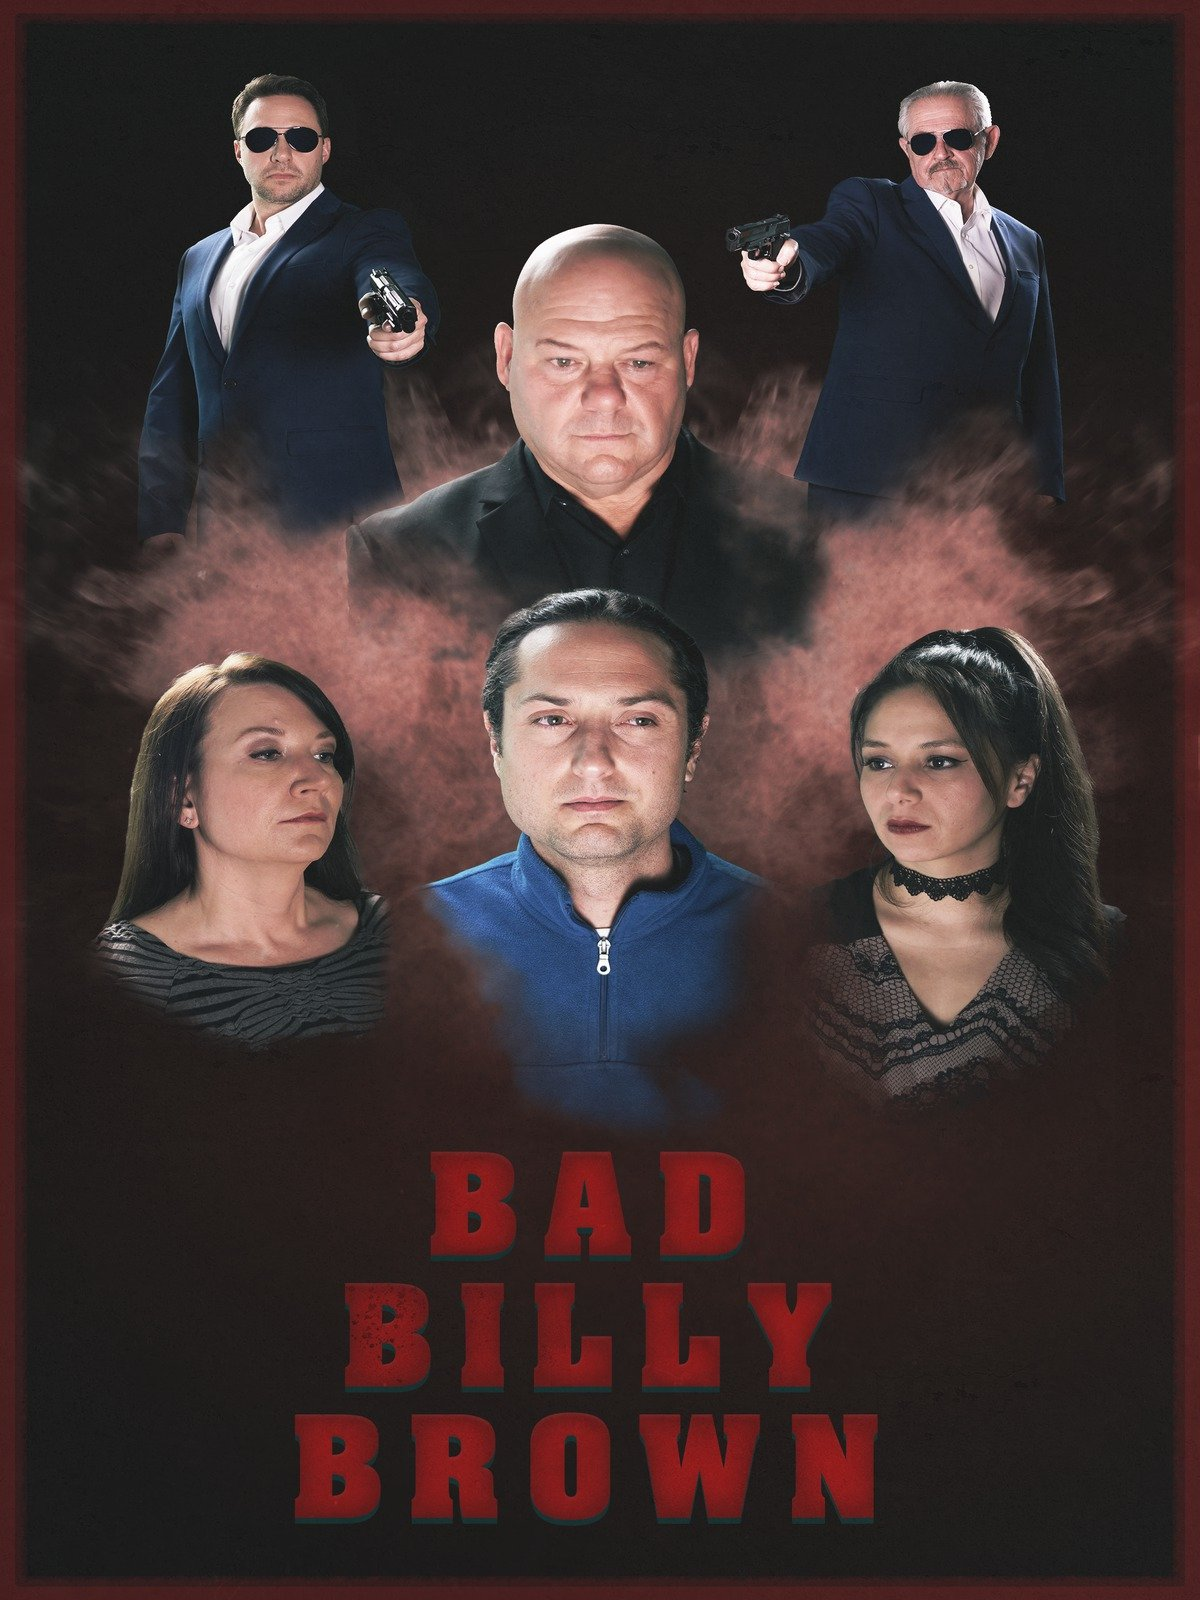 Bad Billy Brown